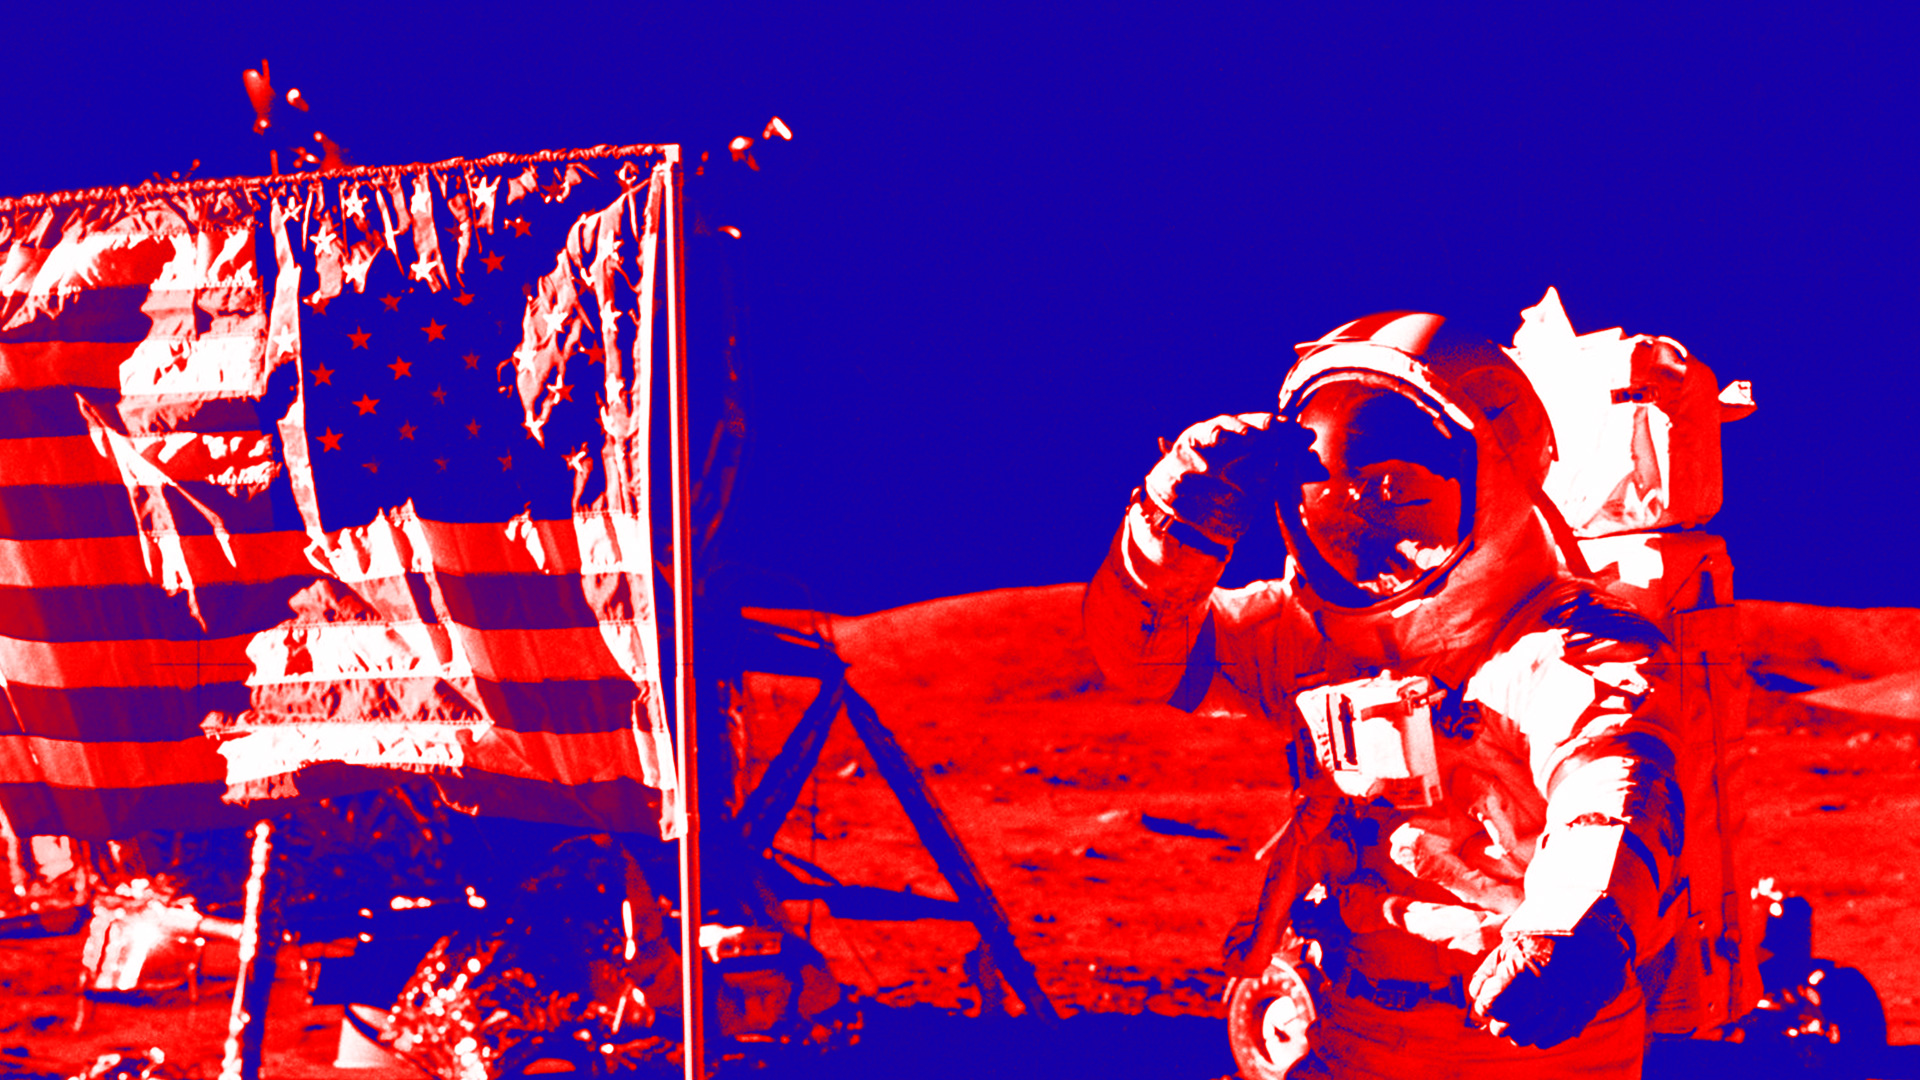 Moon Landing Astronaut with USA Flag Background